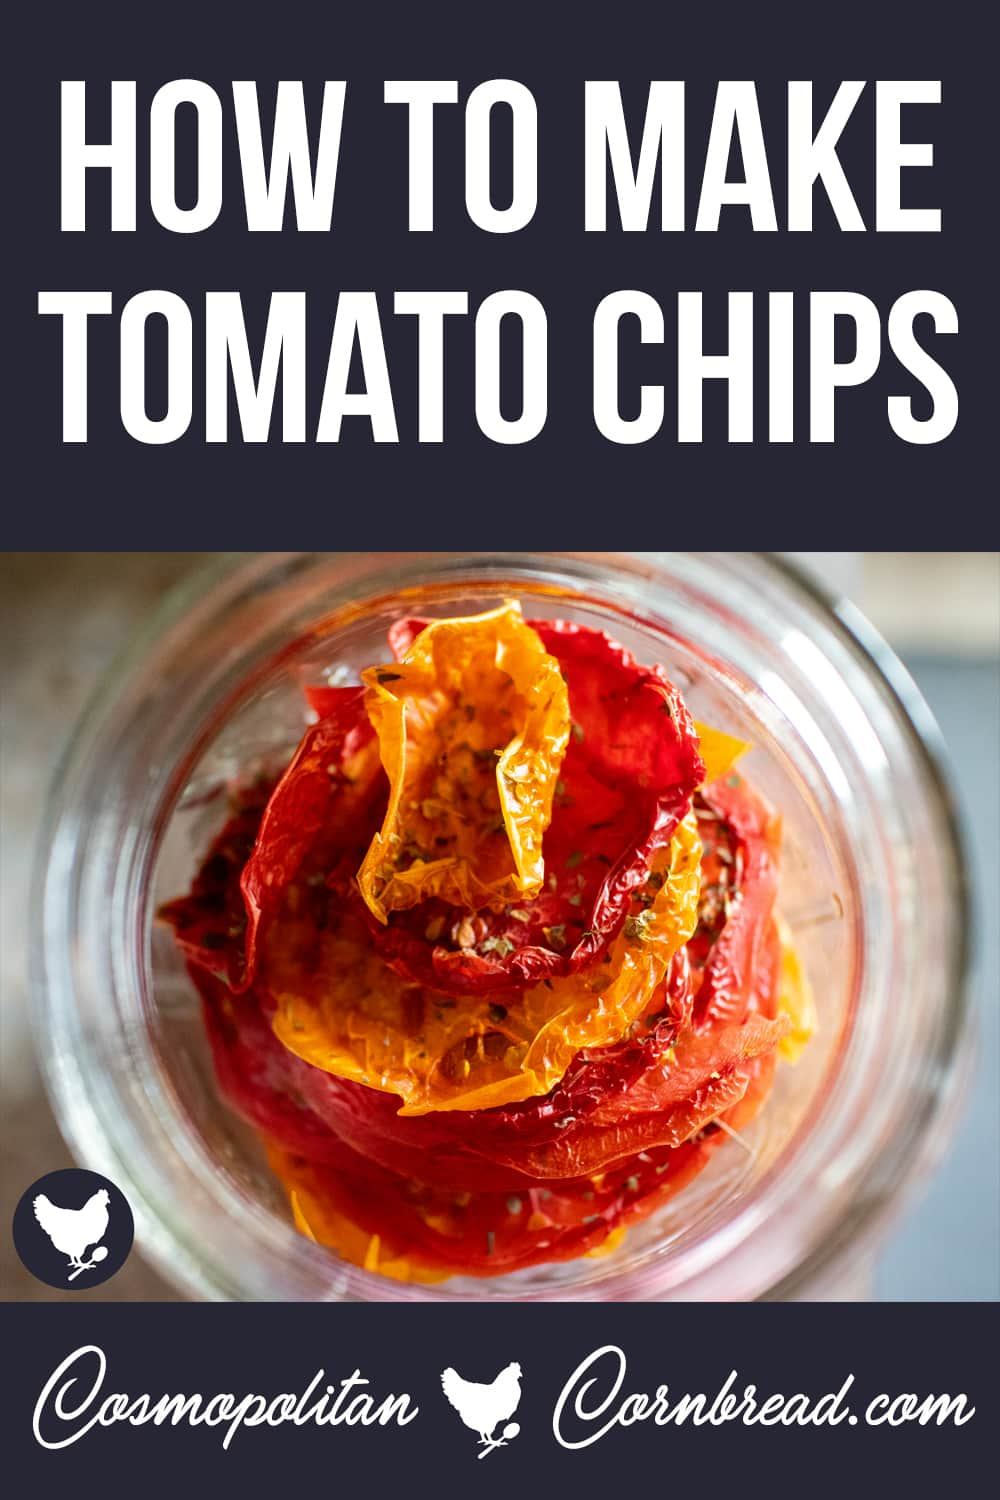 How to Make Tomato Chips - a delicious and healthy snack!